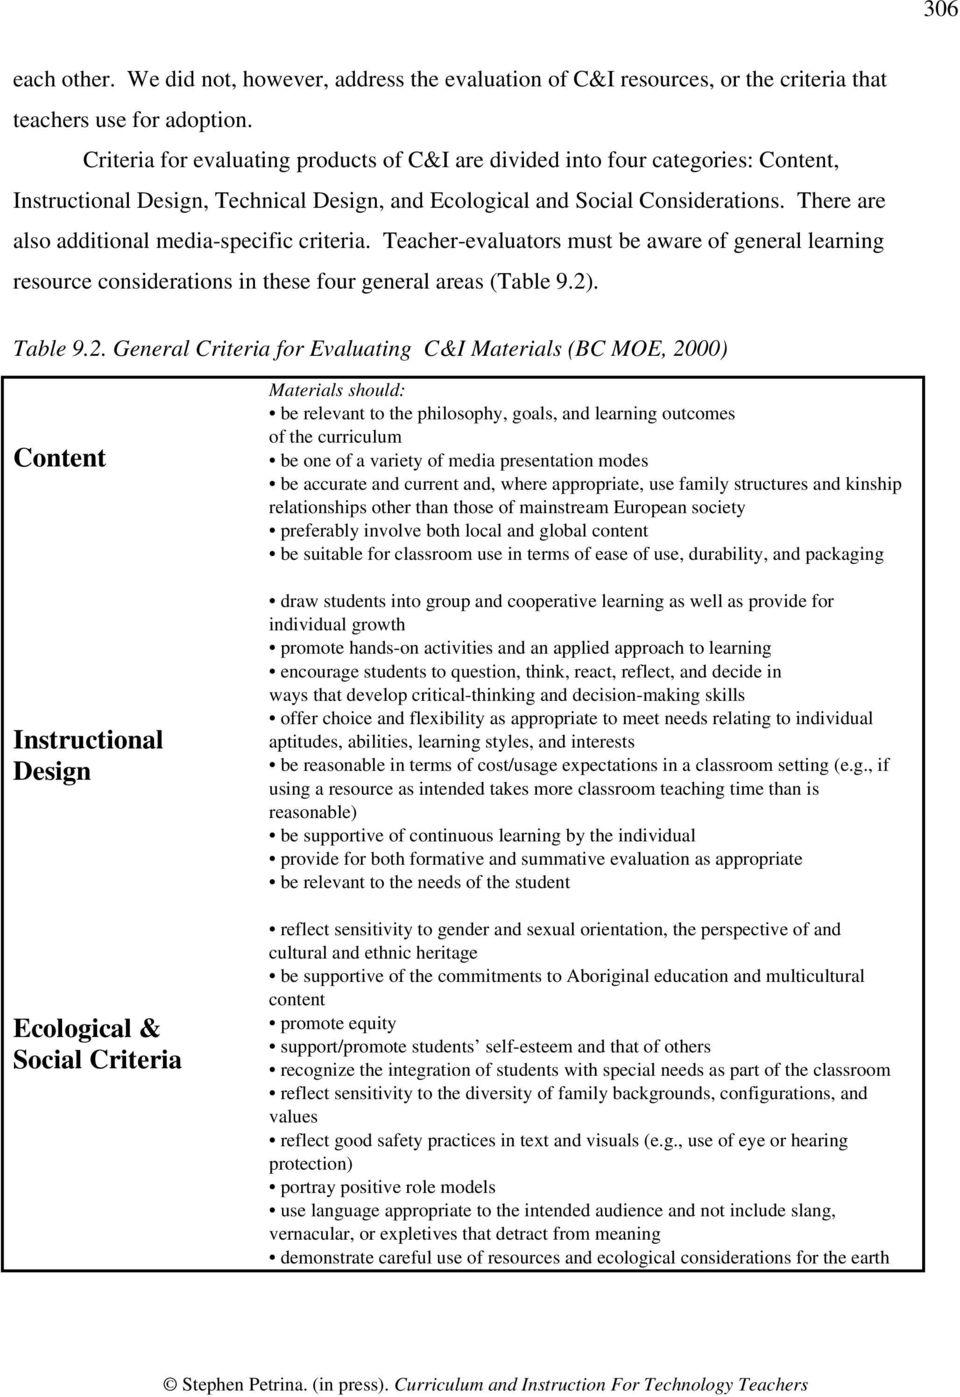 There are also additional media-specific criteria. Teacher-evaluators must be aware of general learning resource considerations in these four general areas (Table 9.2)